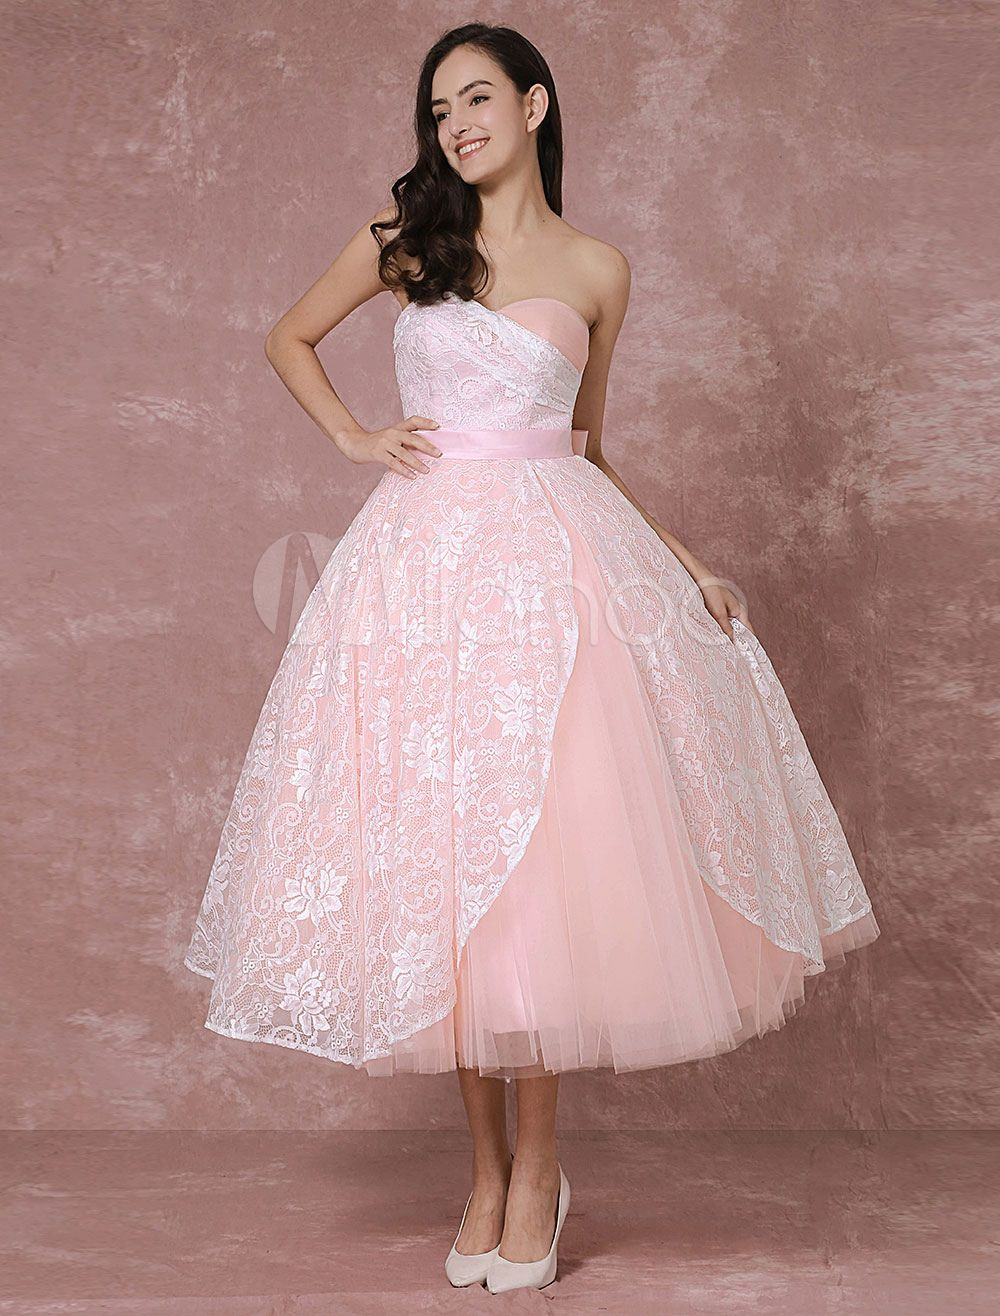 Blush wedding dress short lace bridal gown pink ball gown